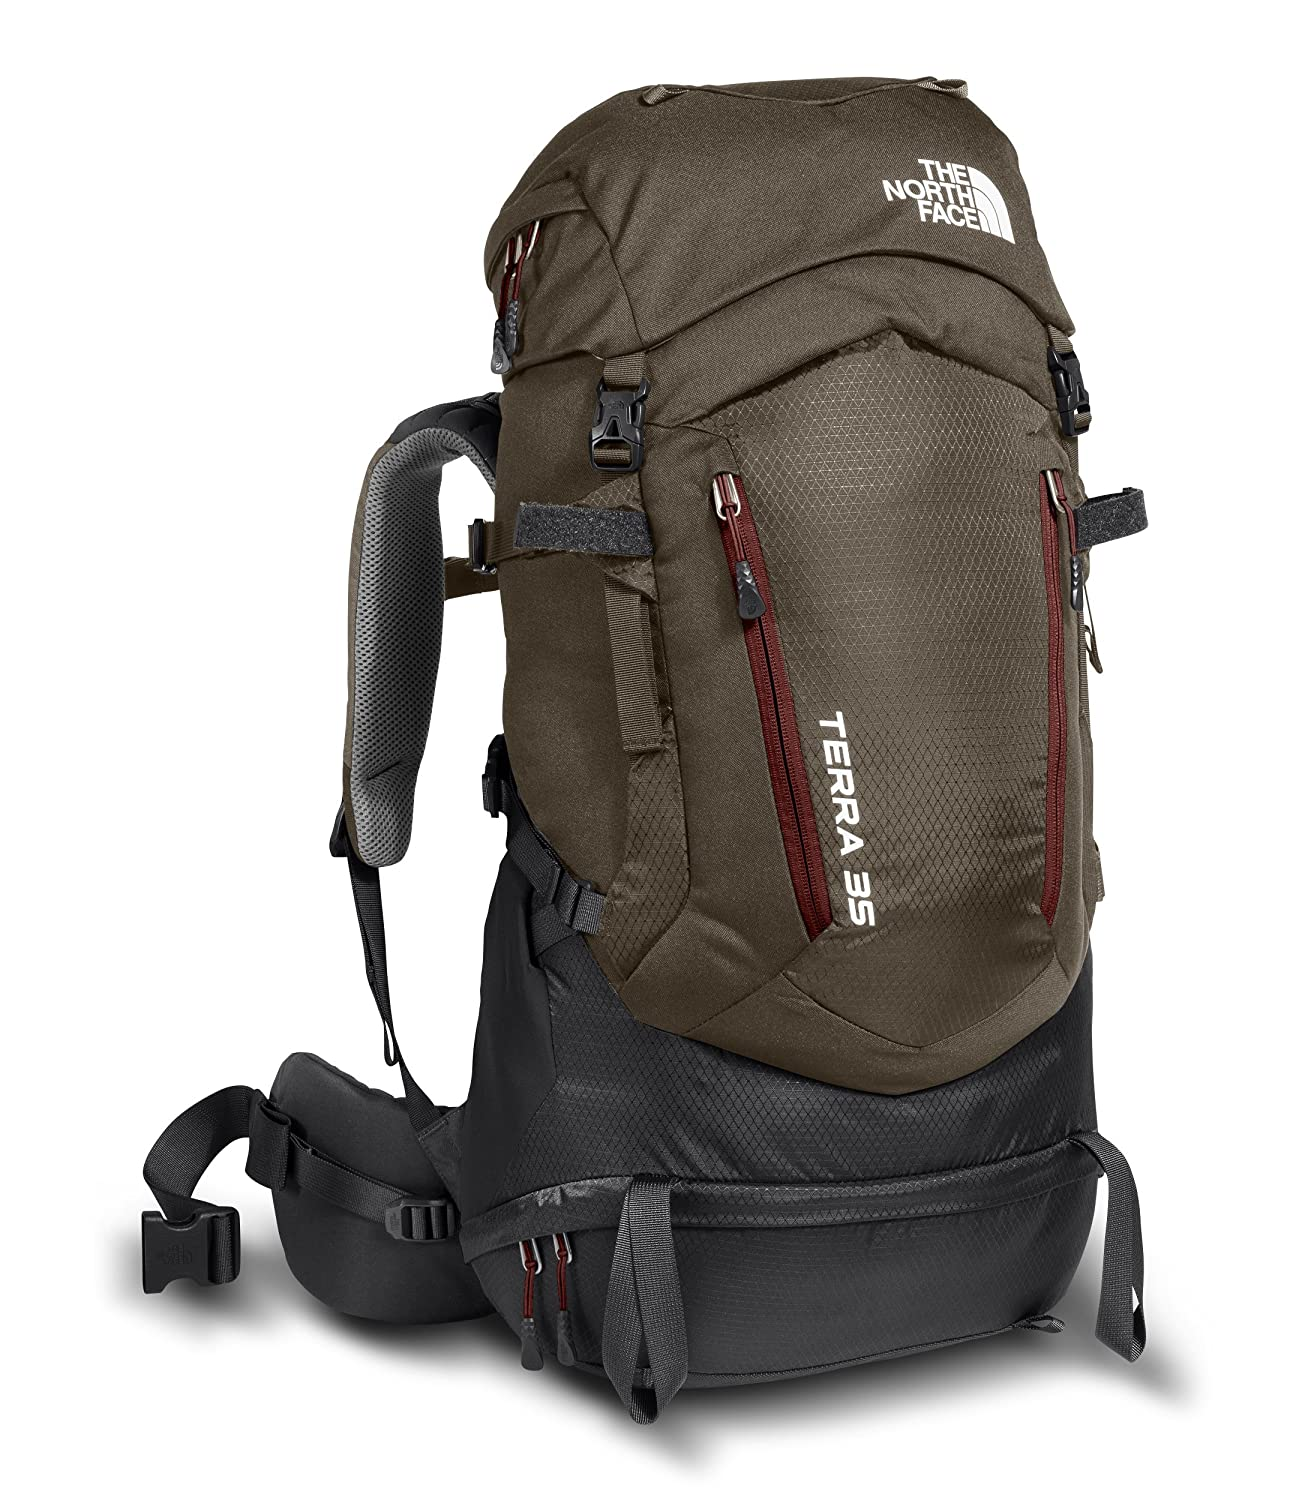 The North Face Terra 35 Pack Large / X-Large Falcon Brown / Sequoia Red B06XJ4SN3J